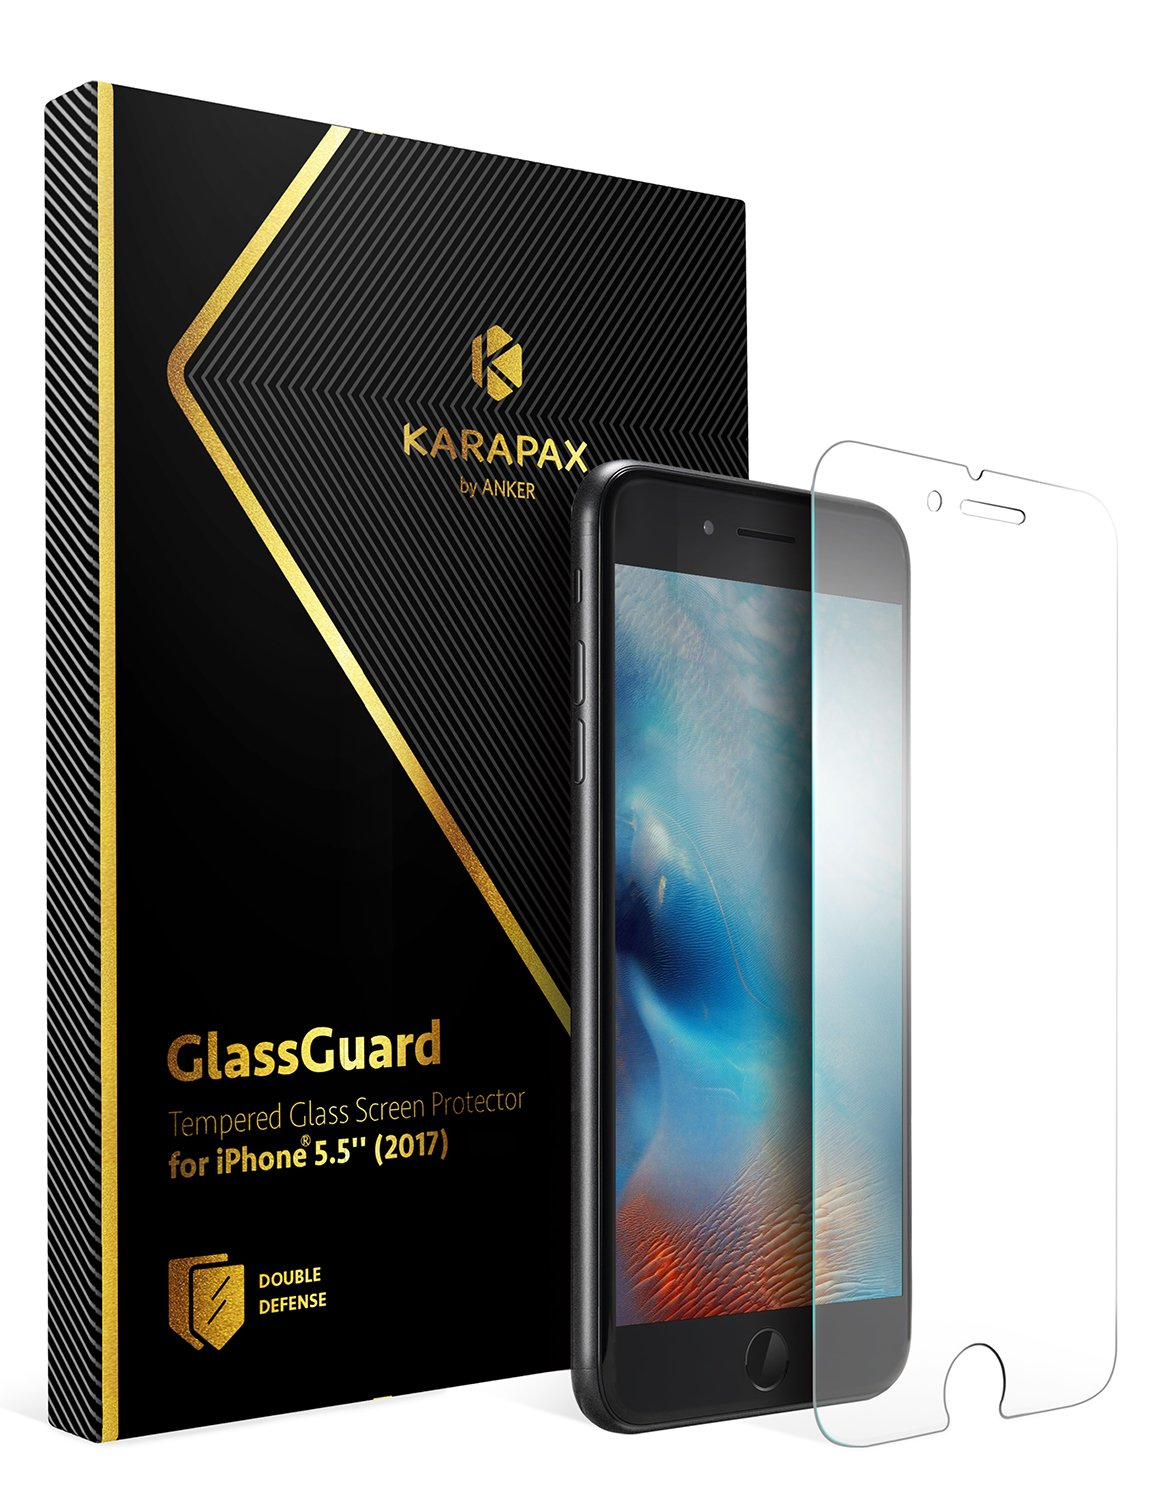 Anker KARAPAX GlassGuard(iPhone 8 Plus / 7 Plus)